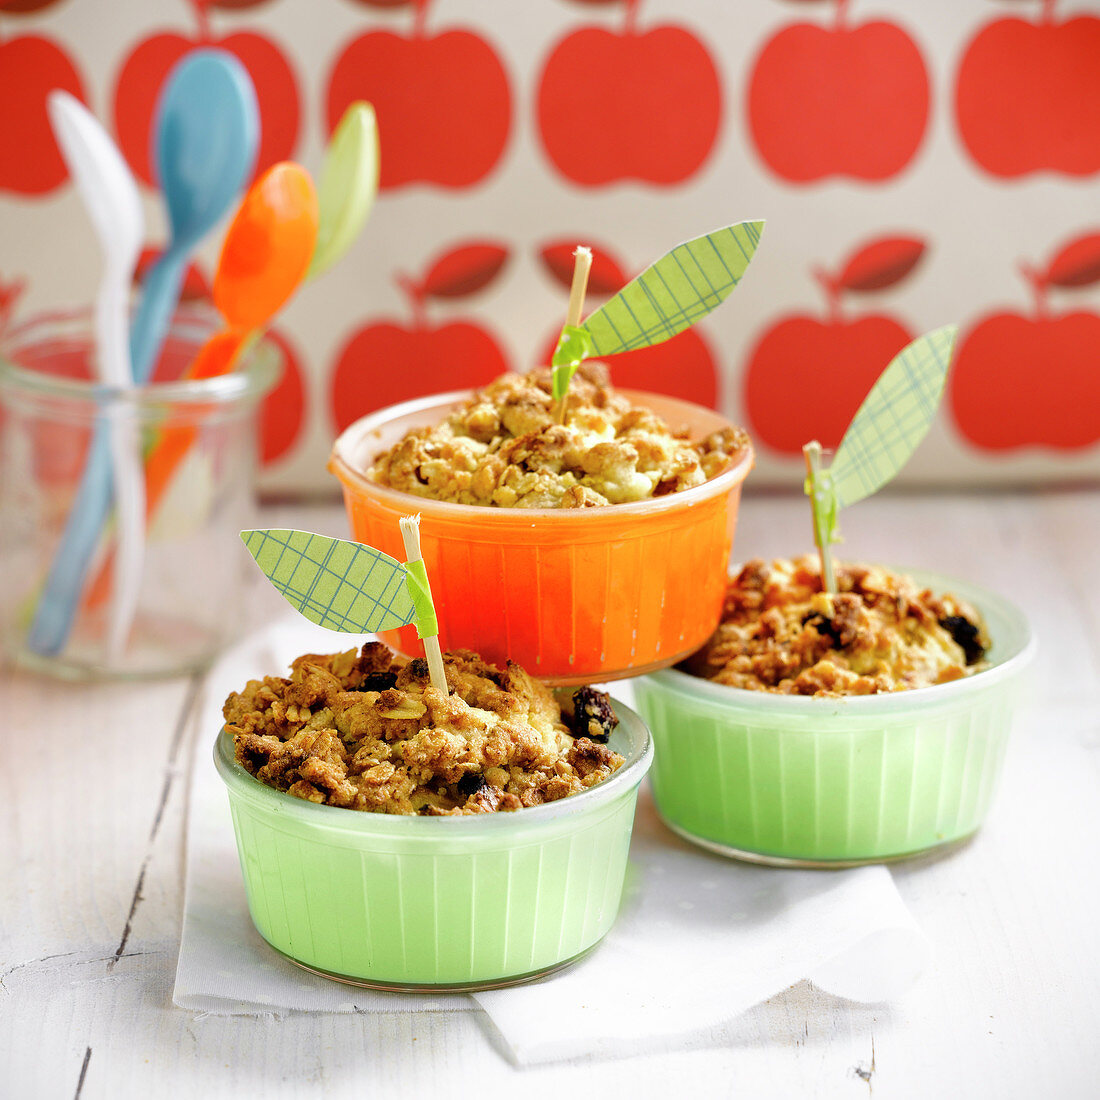 Small apple crumbles